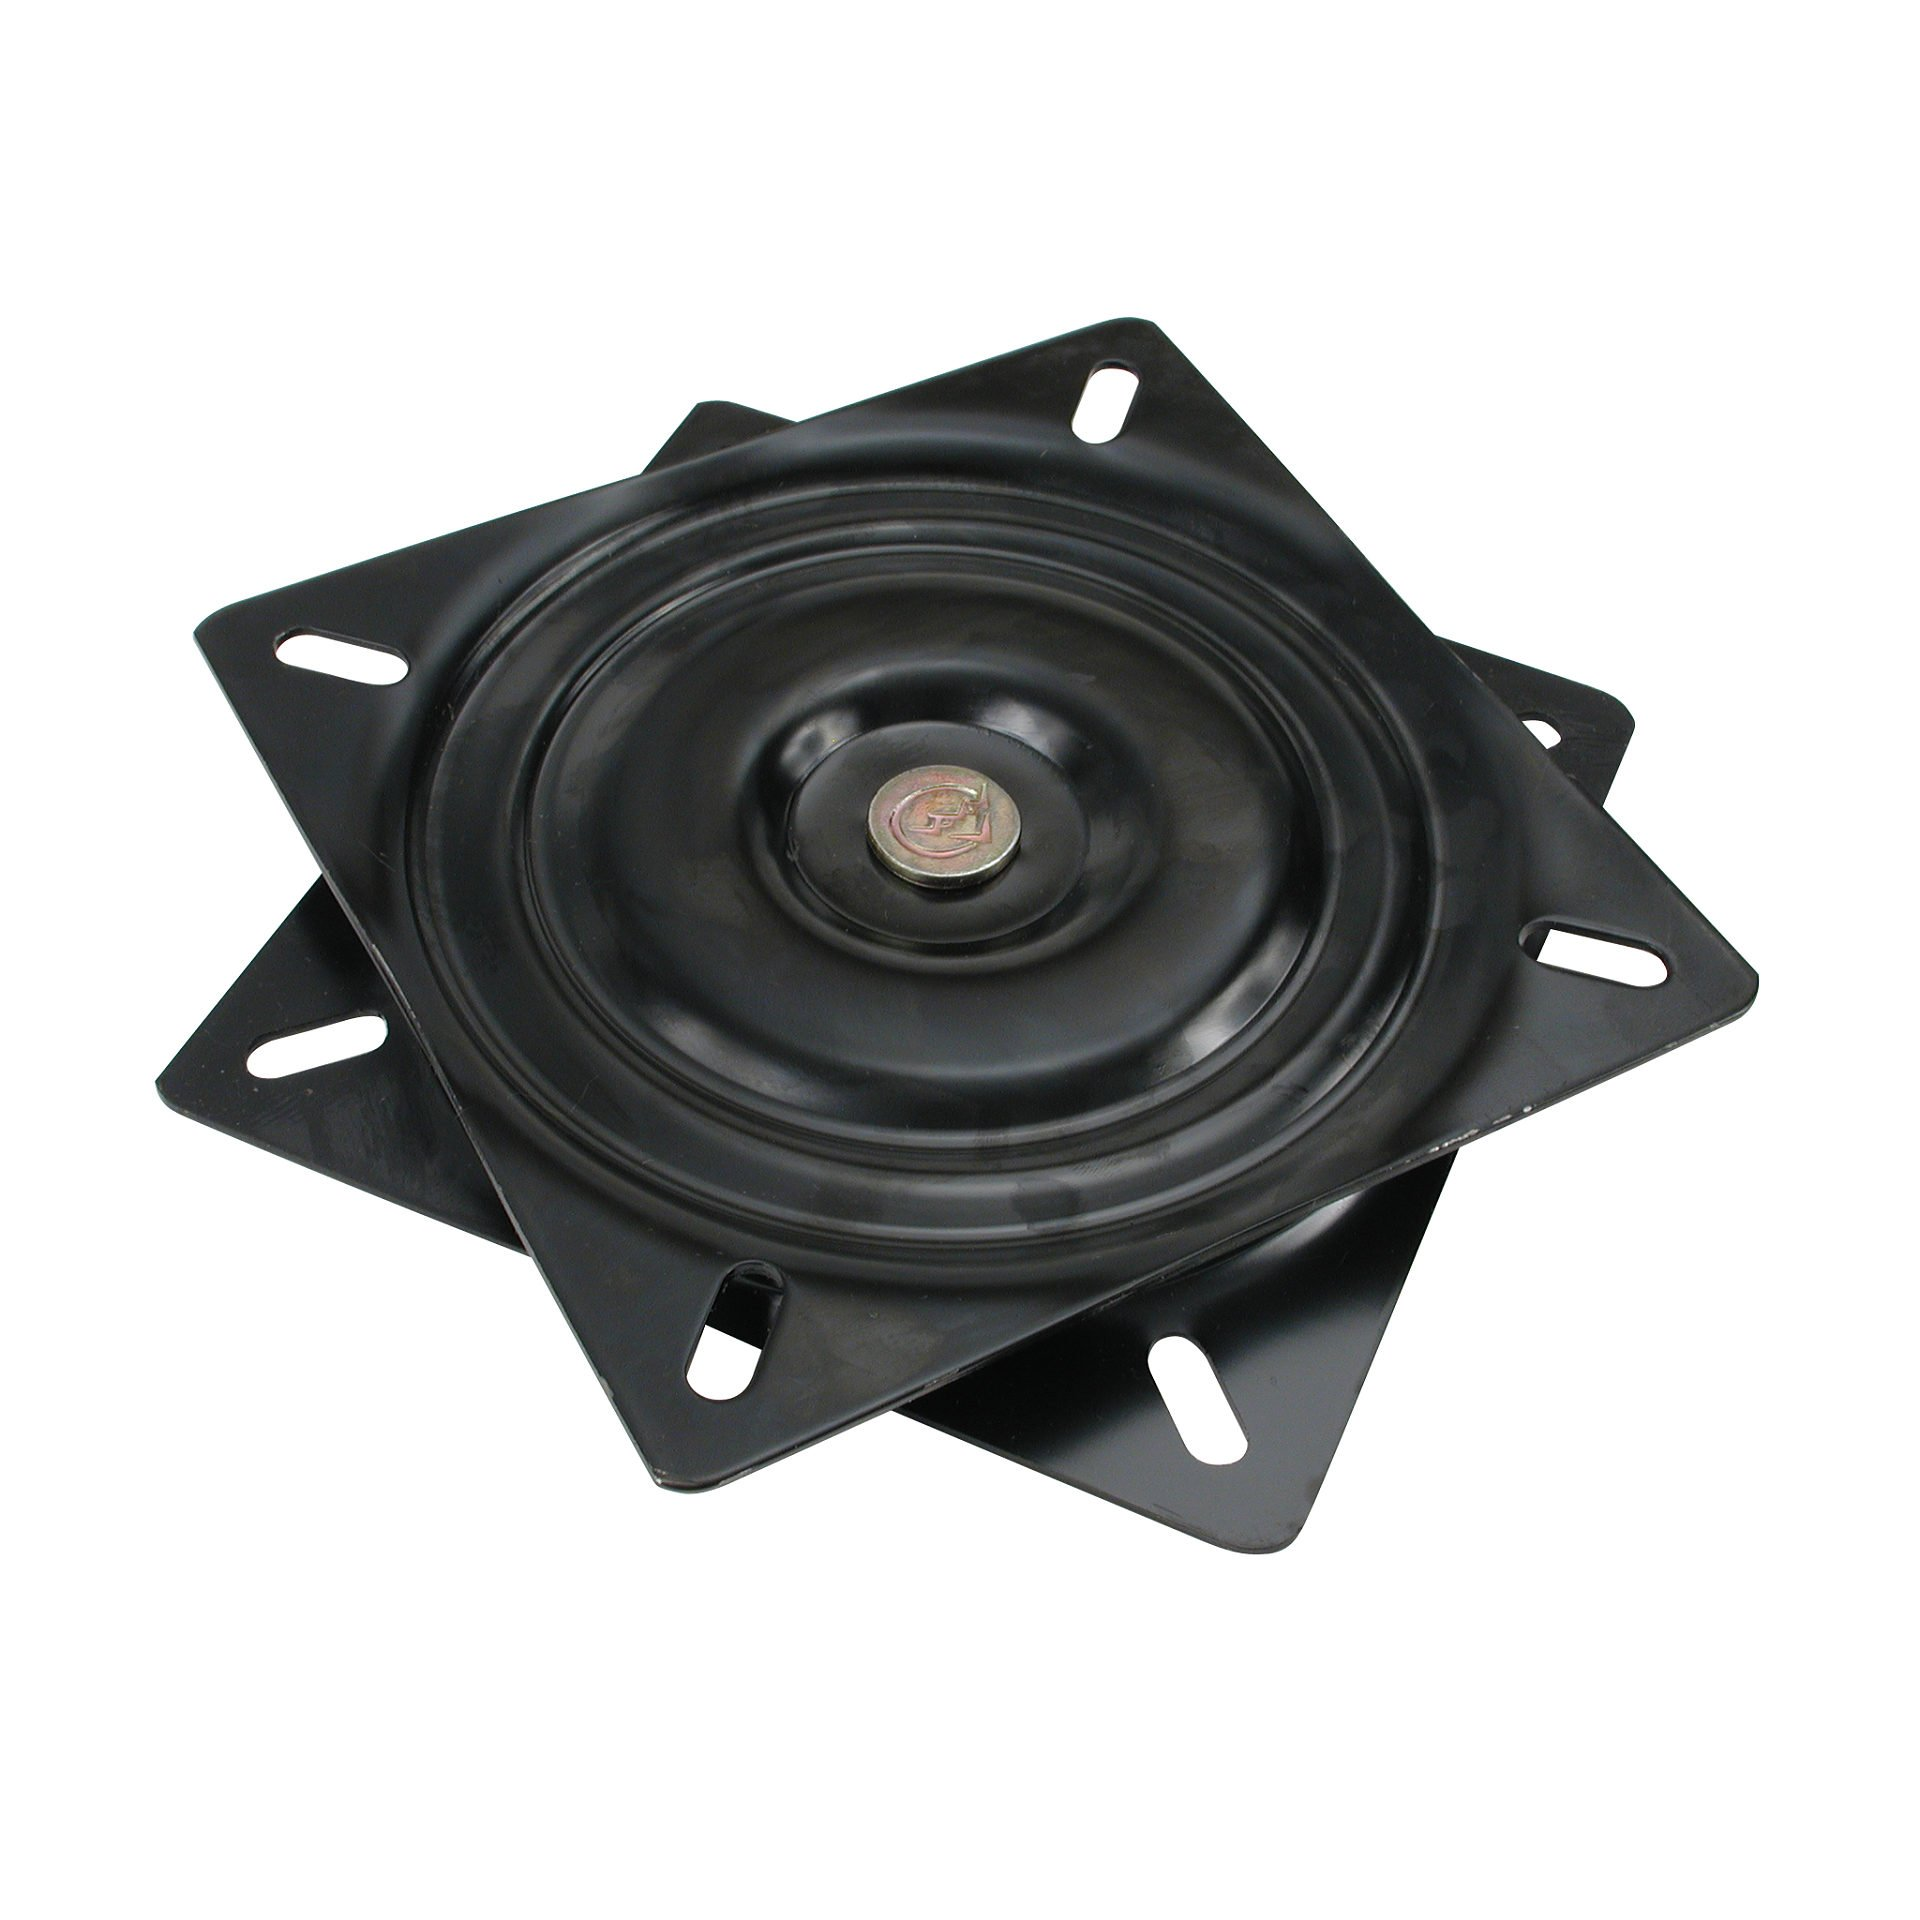 Richelieu Hardware UC11B12 Swivel Plate, 6.61 in, Black